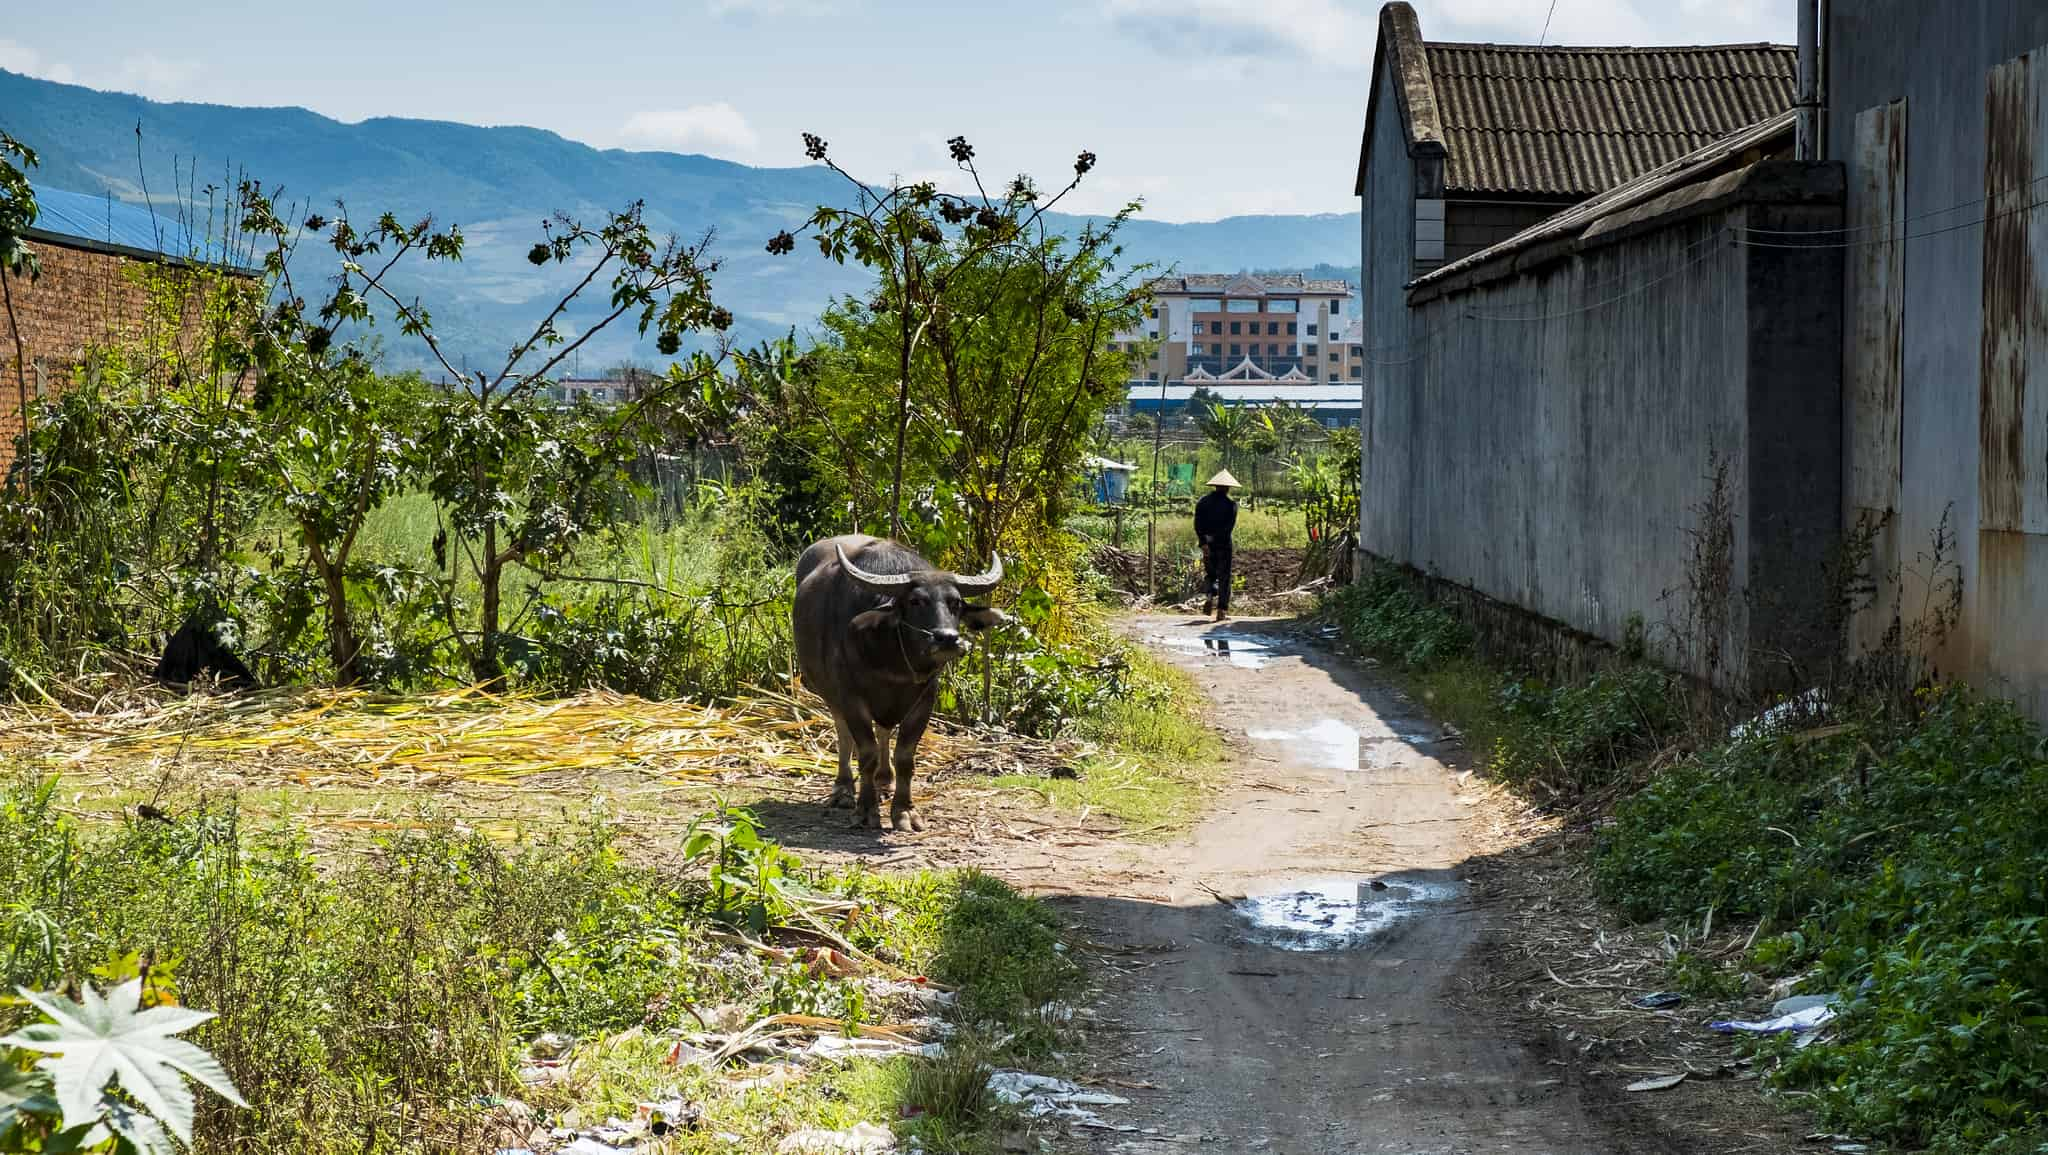 Water buffalo in a Chinese village